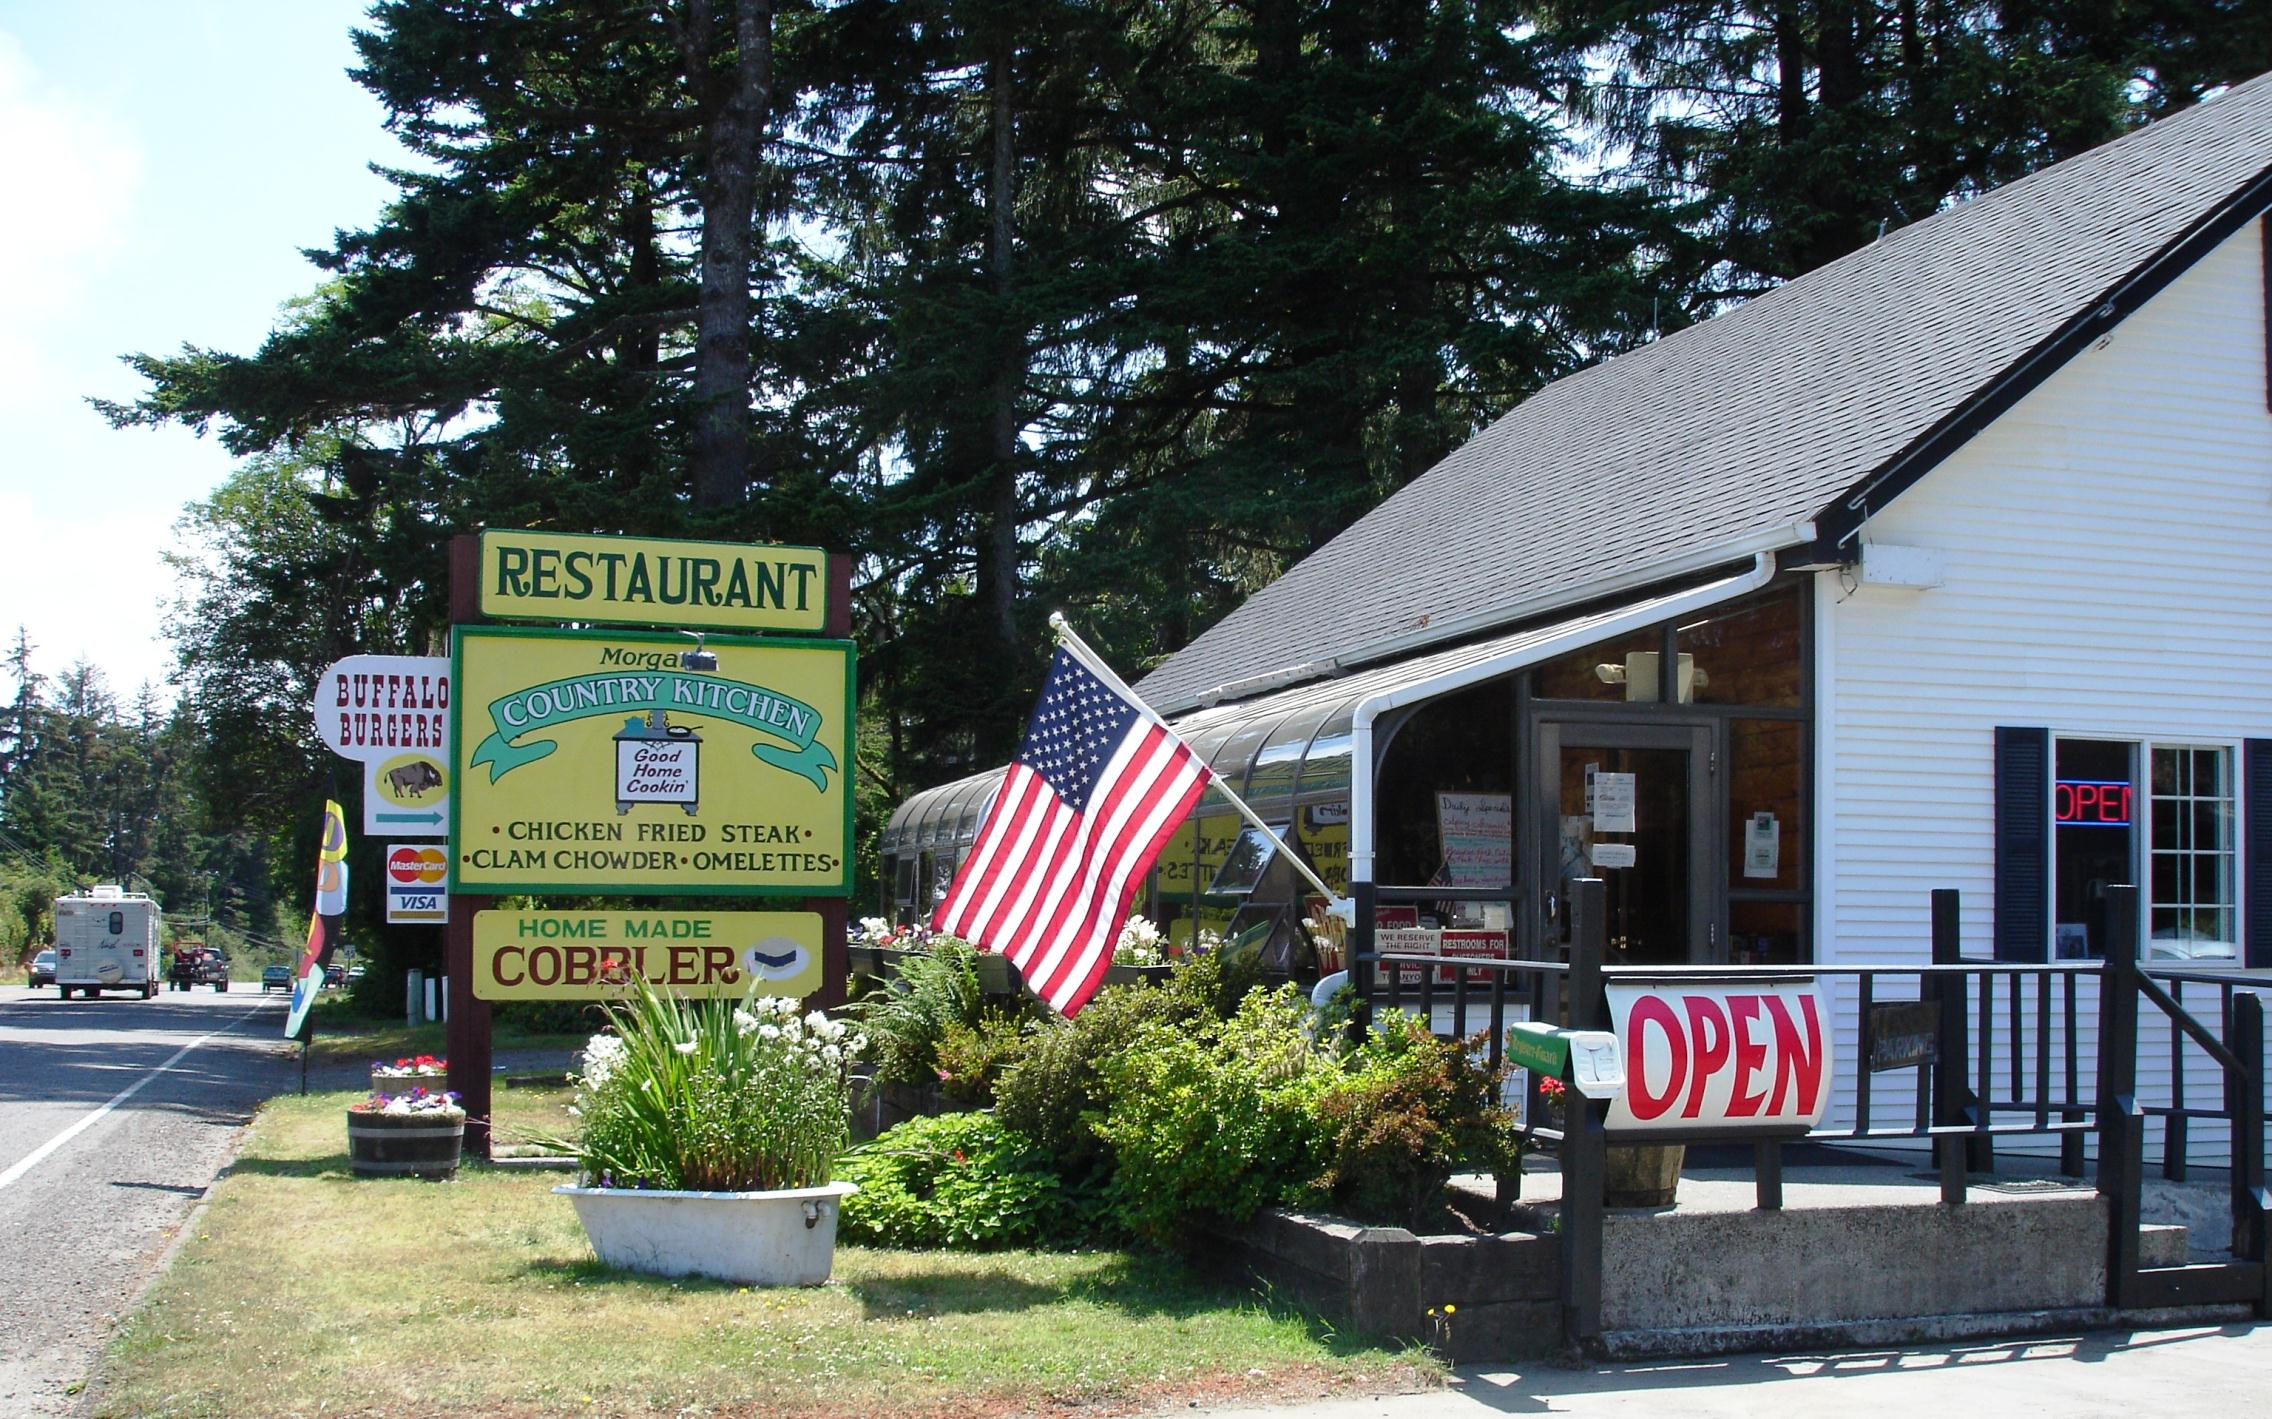 Morgan's Country Kitchen serves hearty portions of diner food for breakfast and lunch only seven days a week.